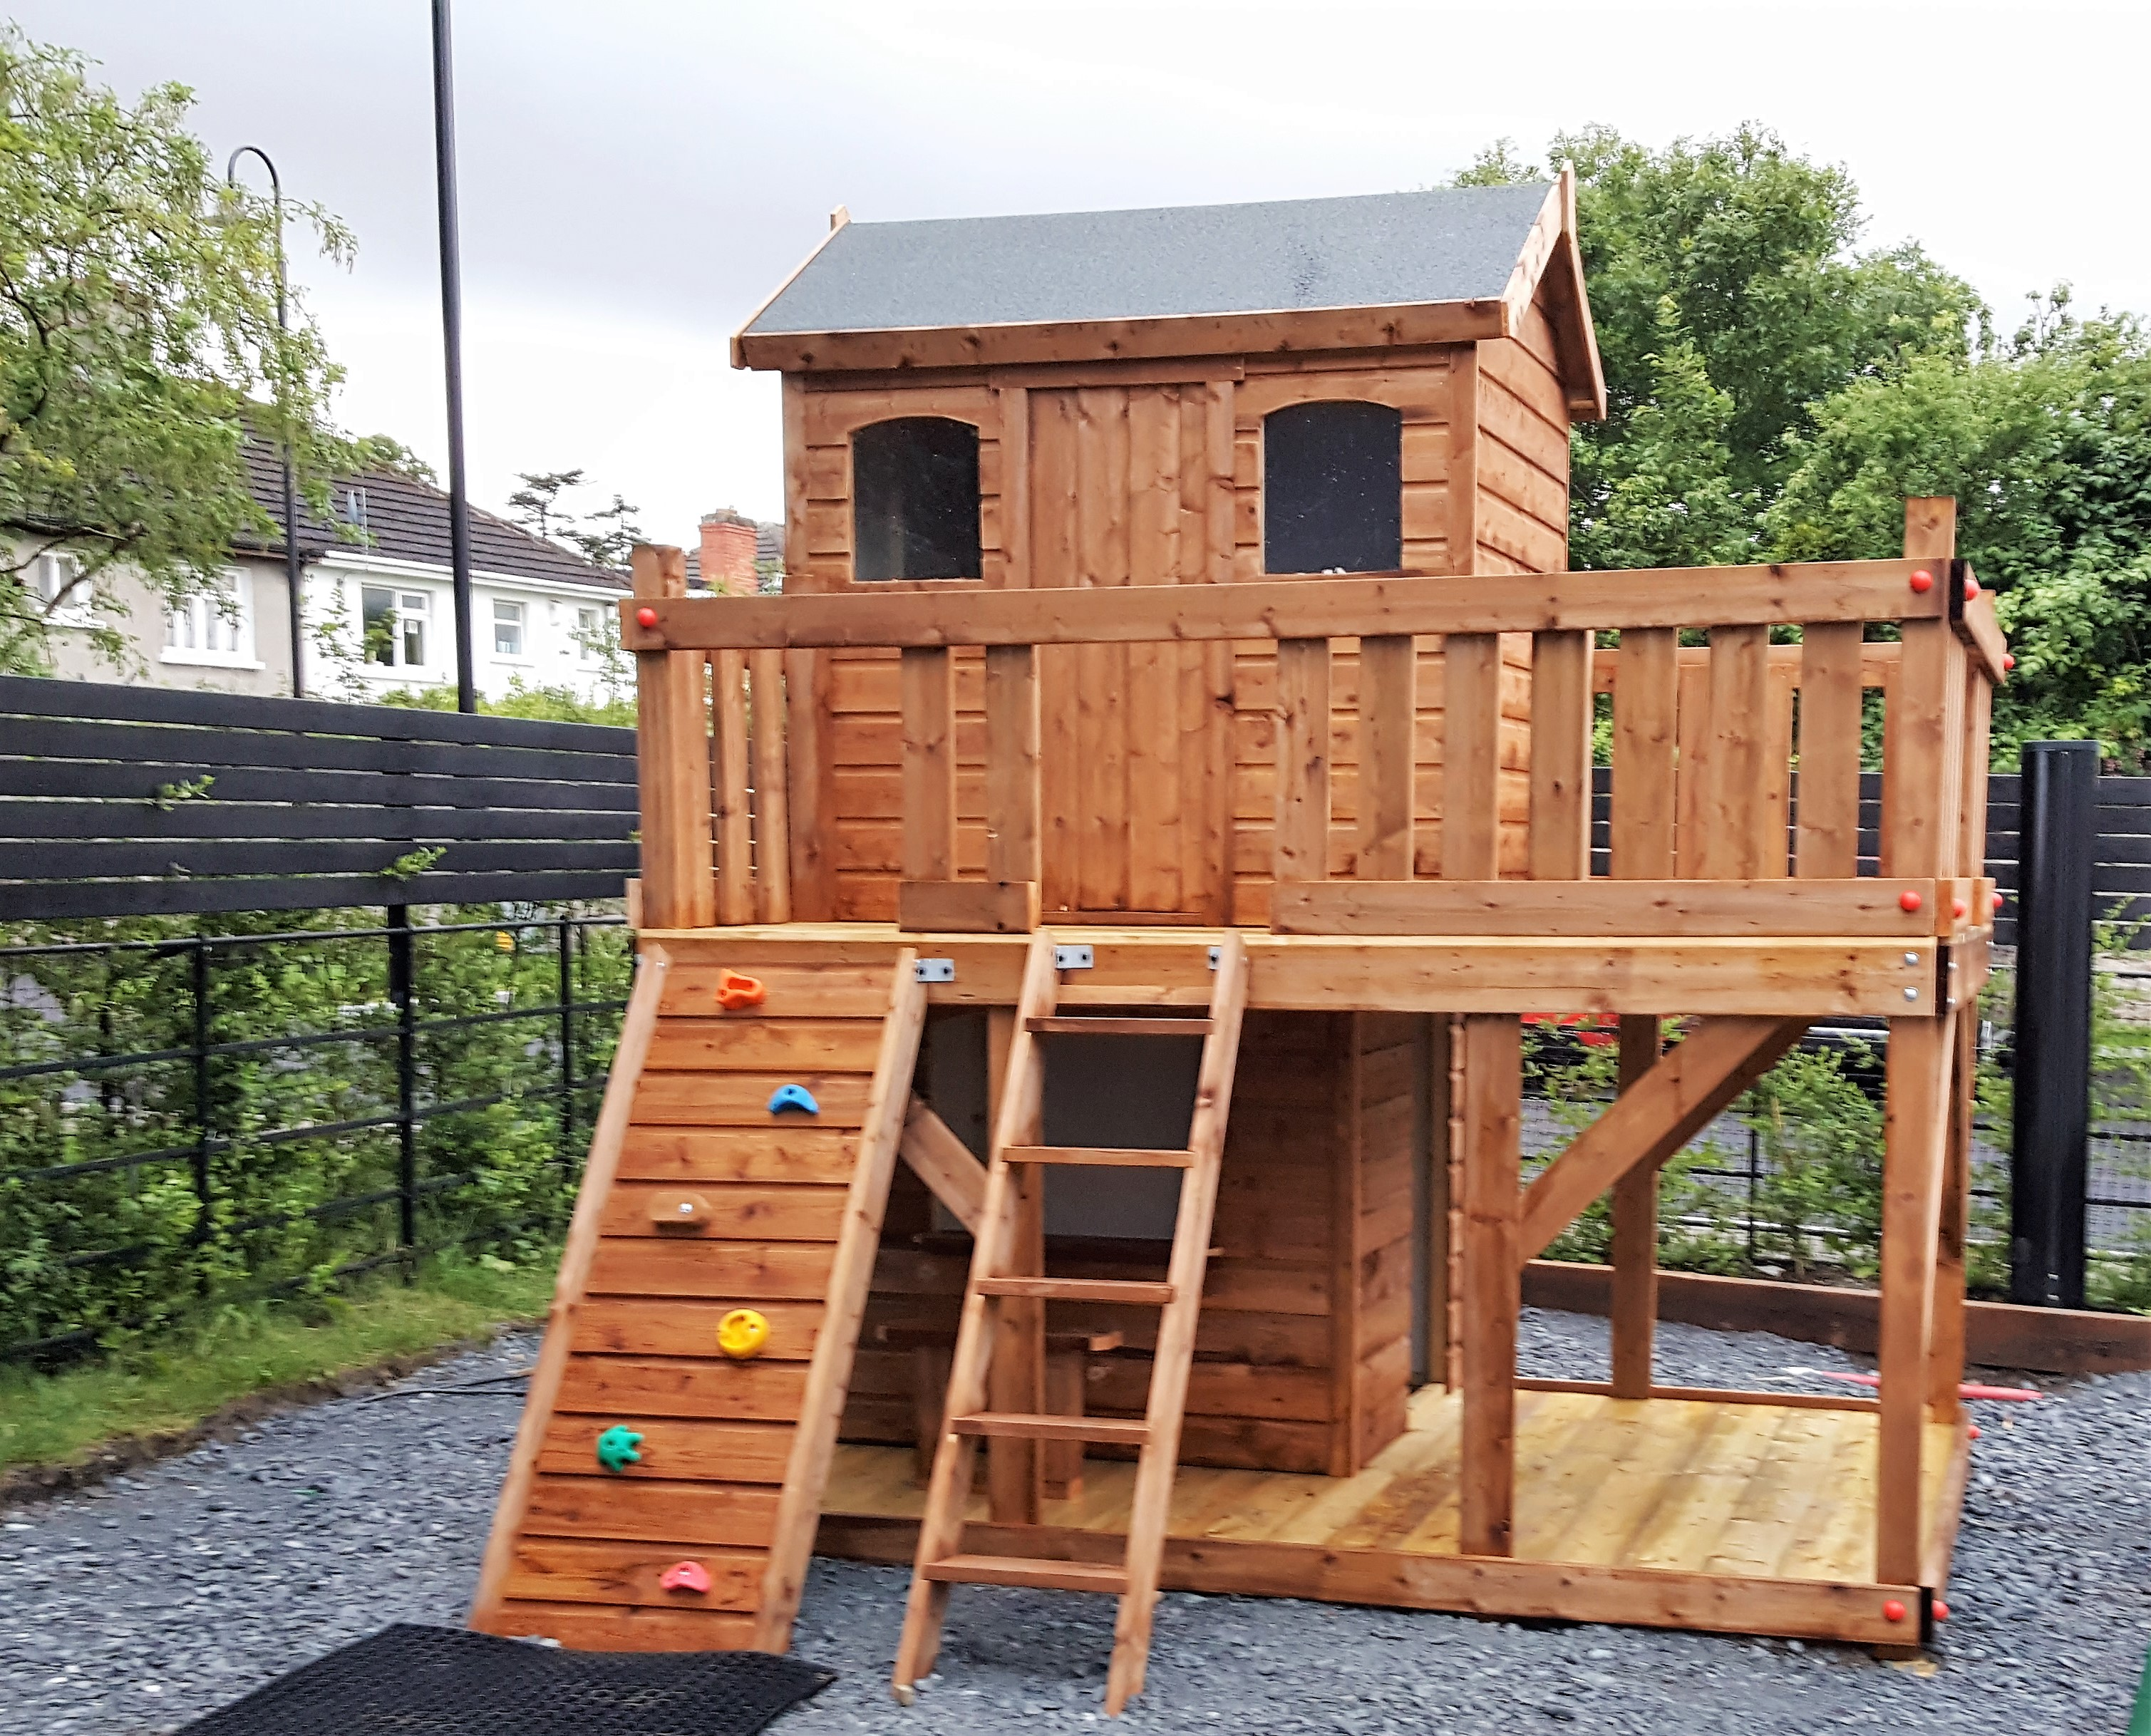 Tree house , play shop, rock-wall. large upper deck with access ladder and rock wall